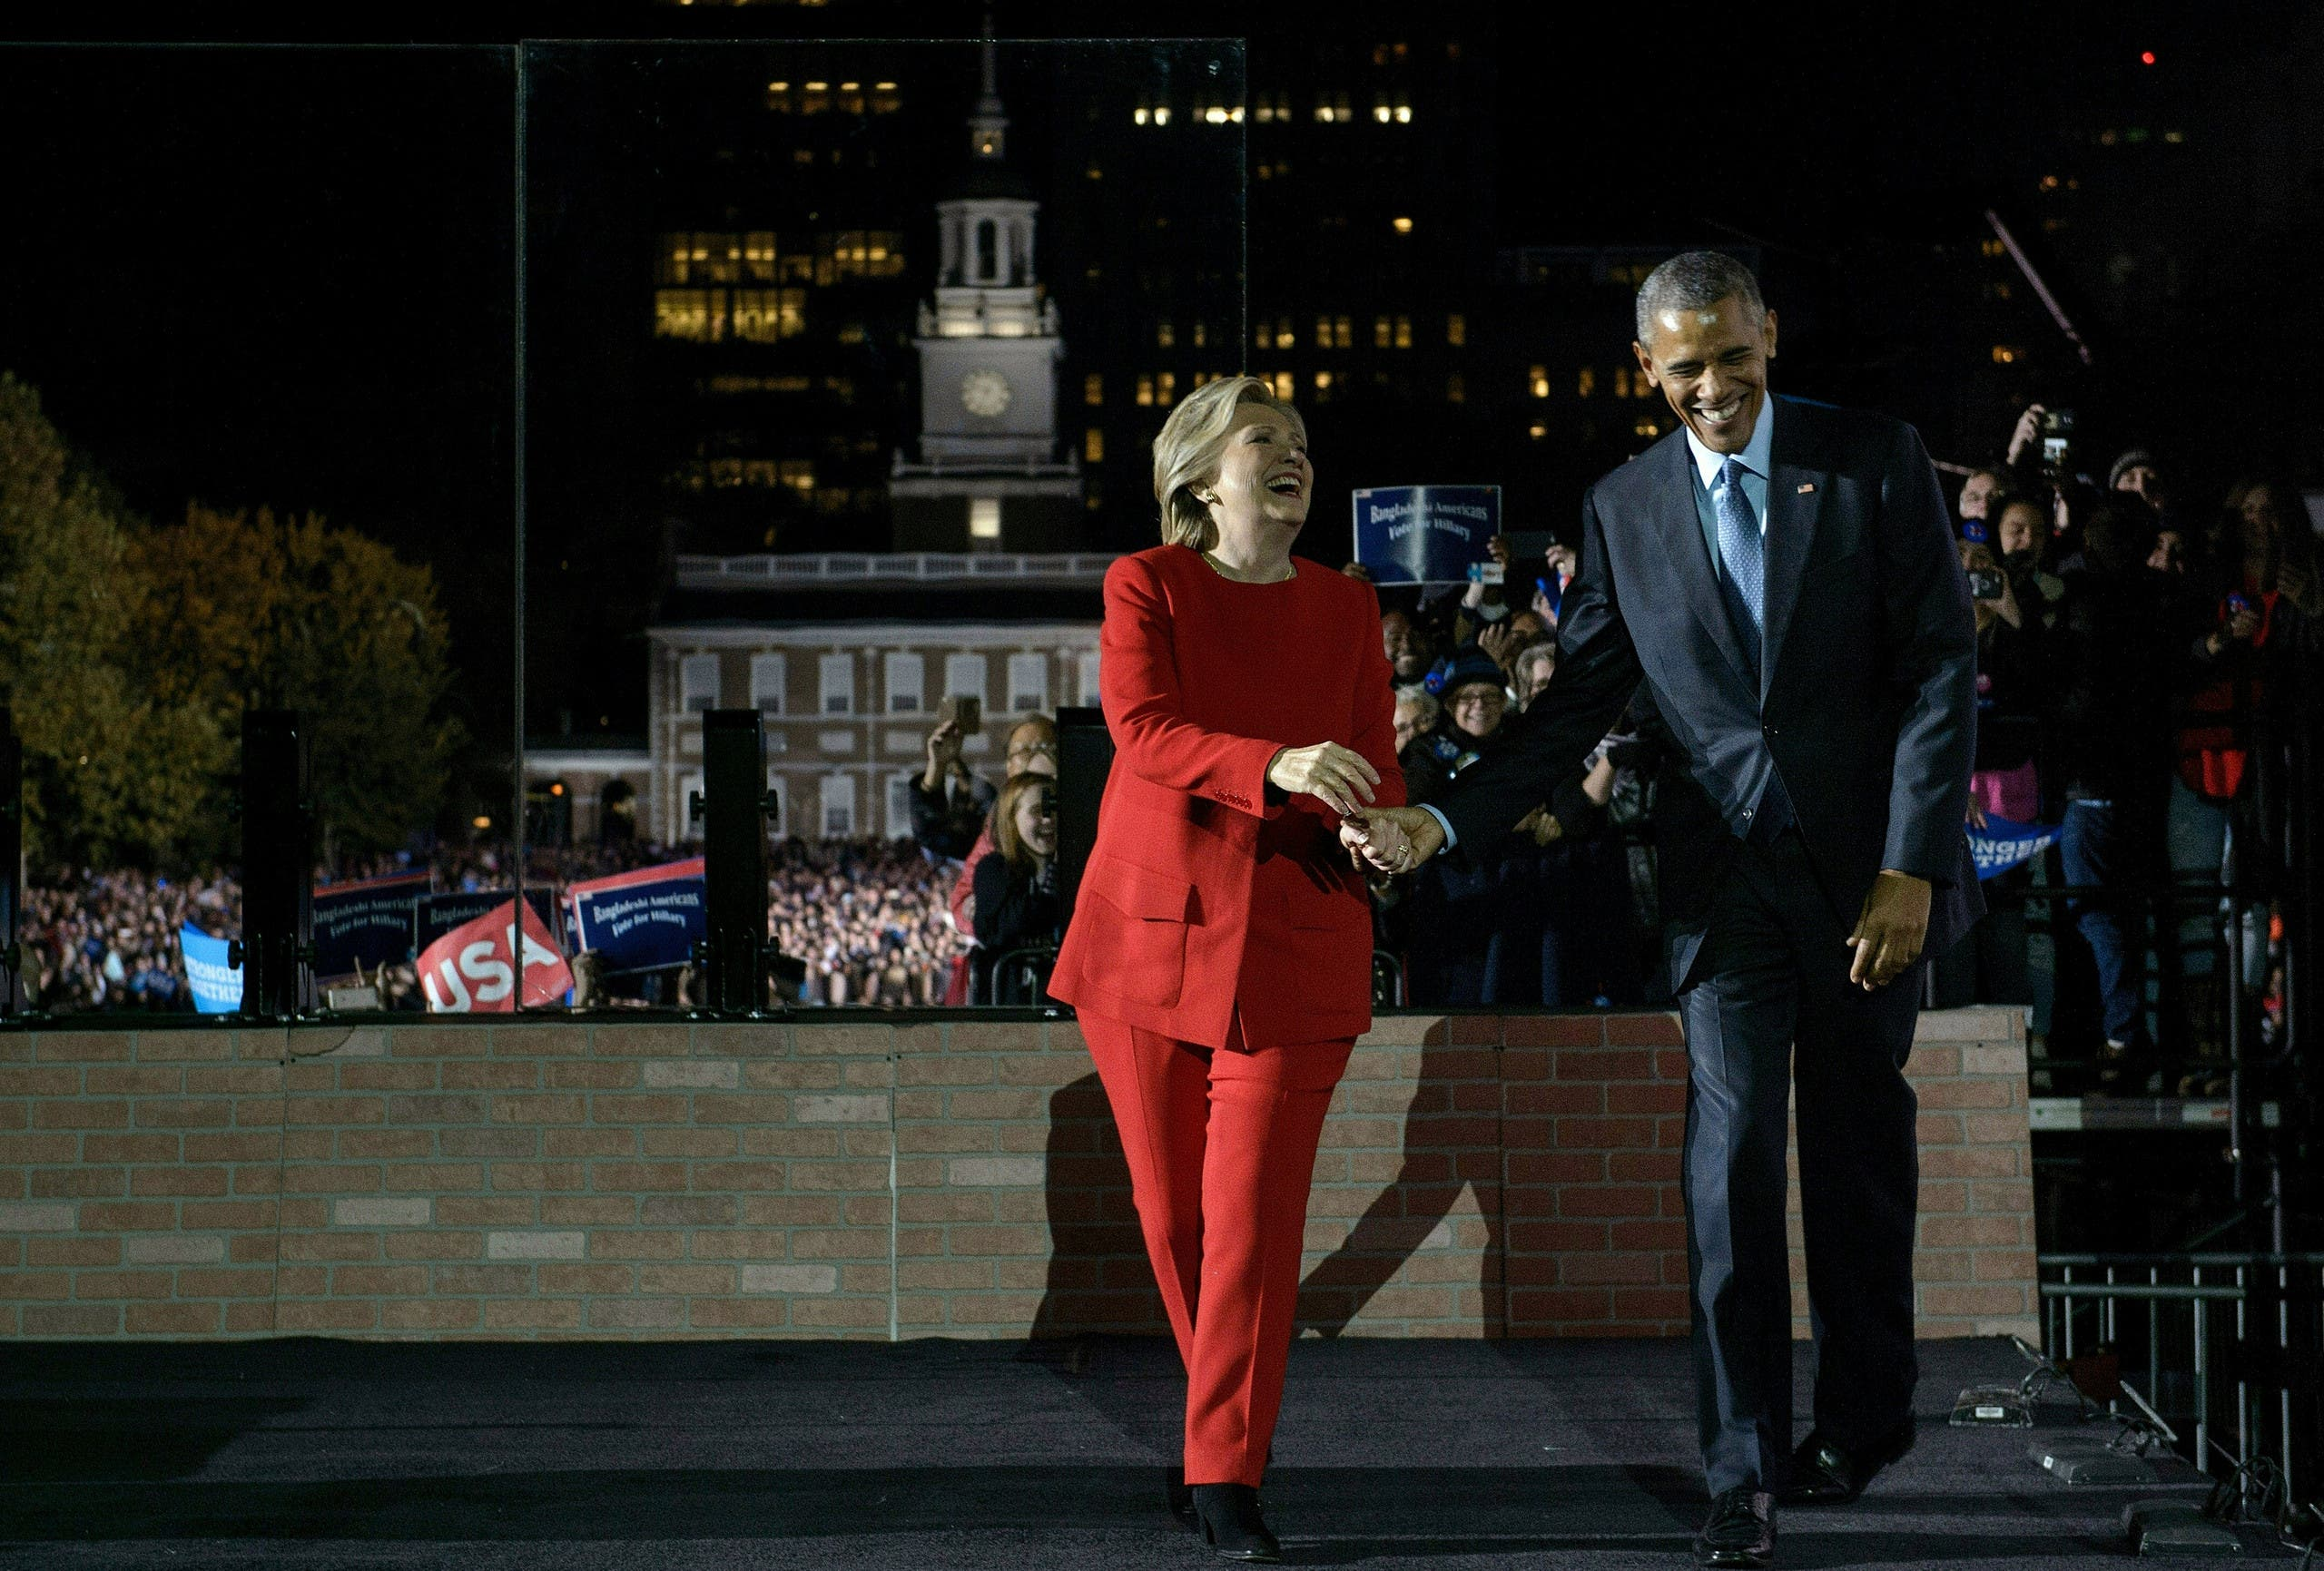 """""""Our core values are being tested in this election but my faith in our future has never been stronger,"""" Clinton said. (AFP)"""